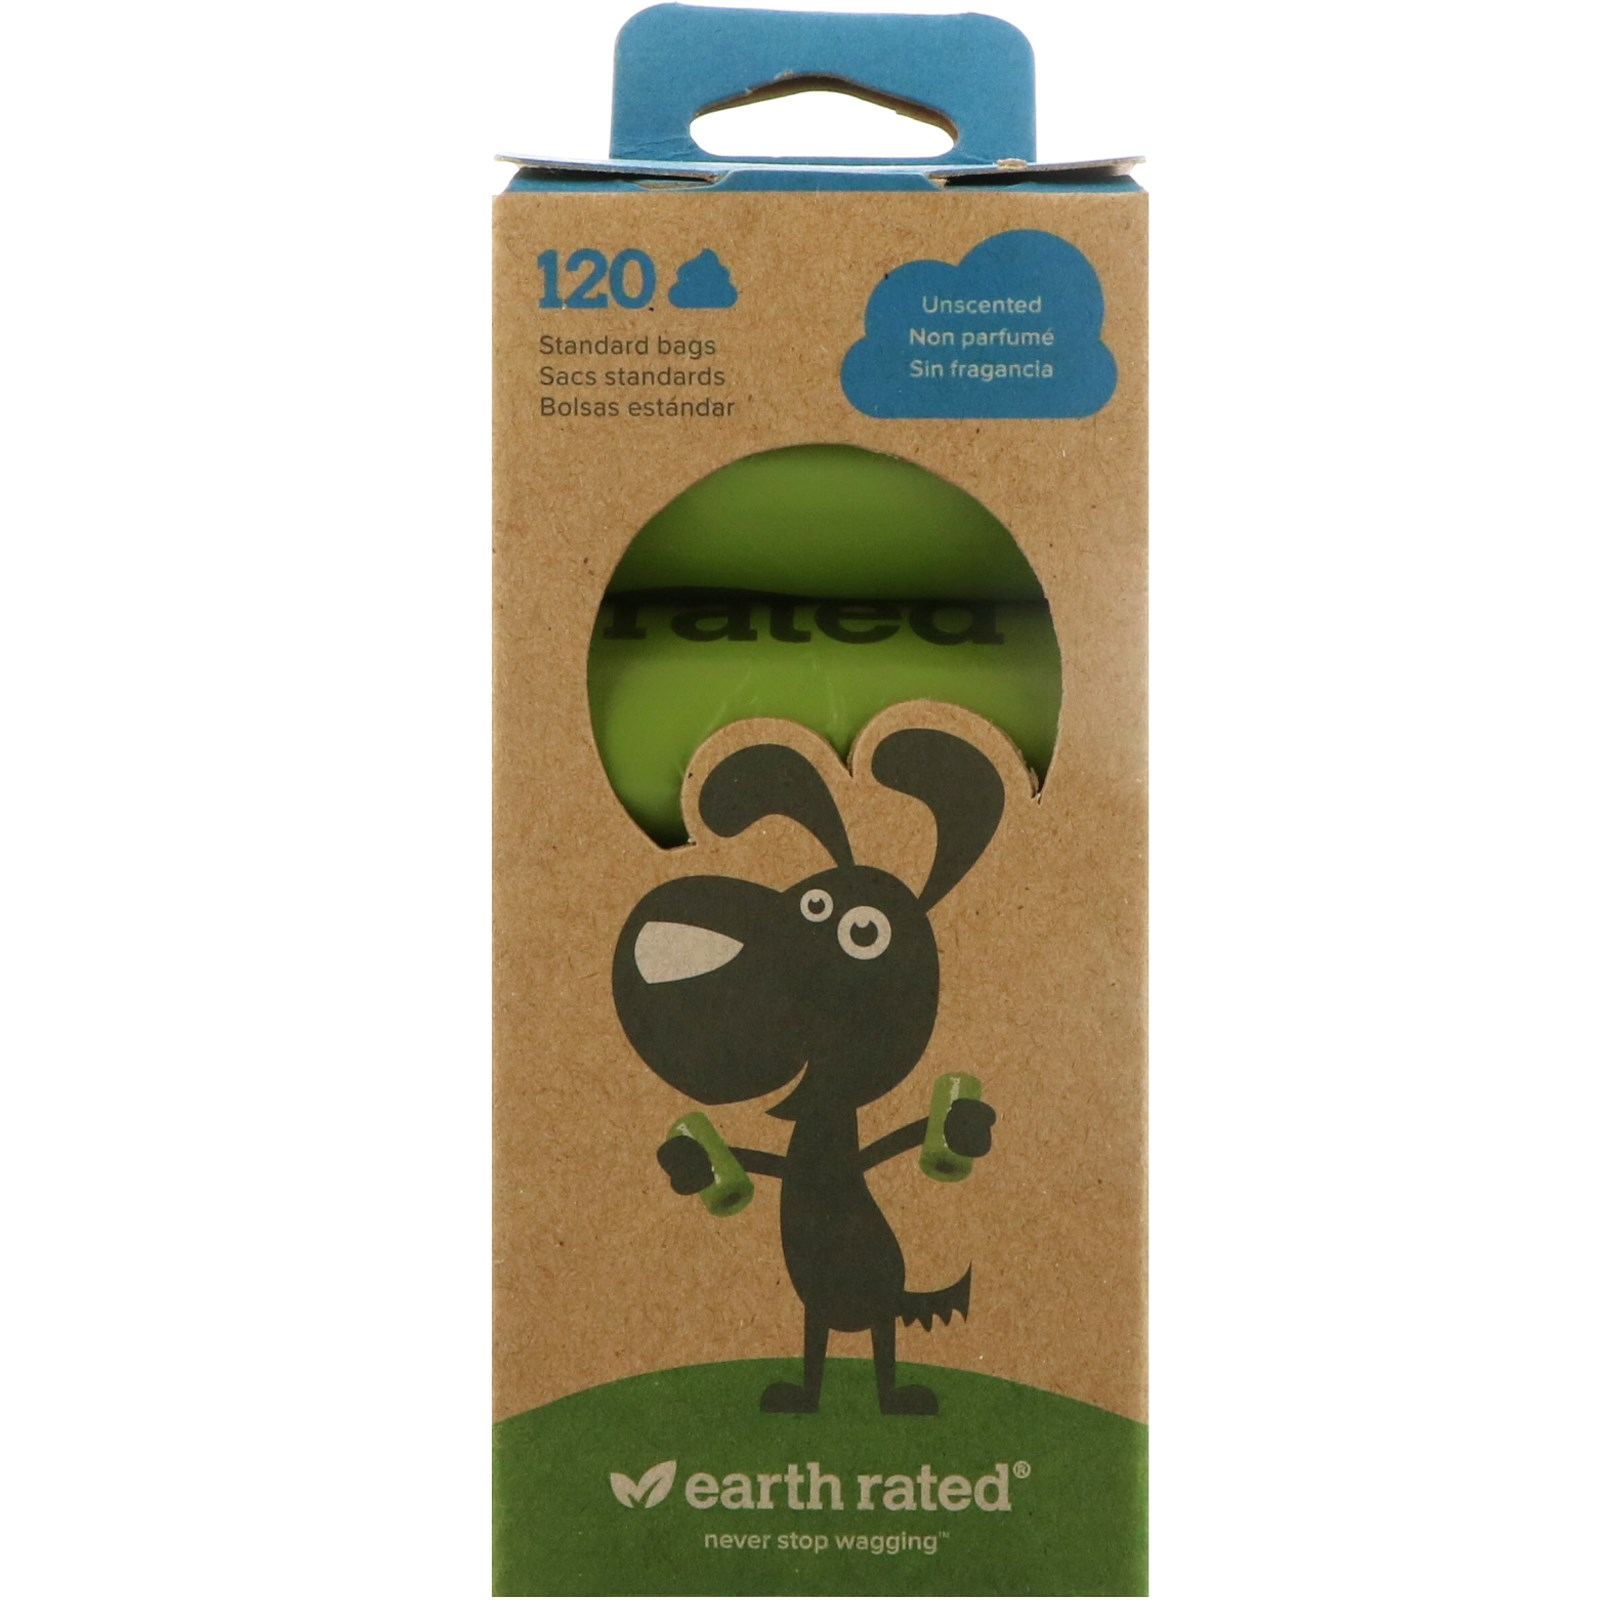 Earth rated dog waste bags unscented 120 bags 8 rolls for Earth rated dog bags